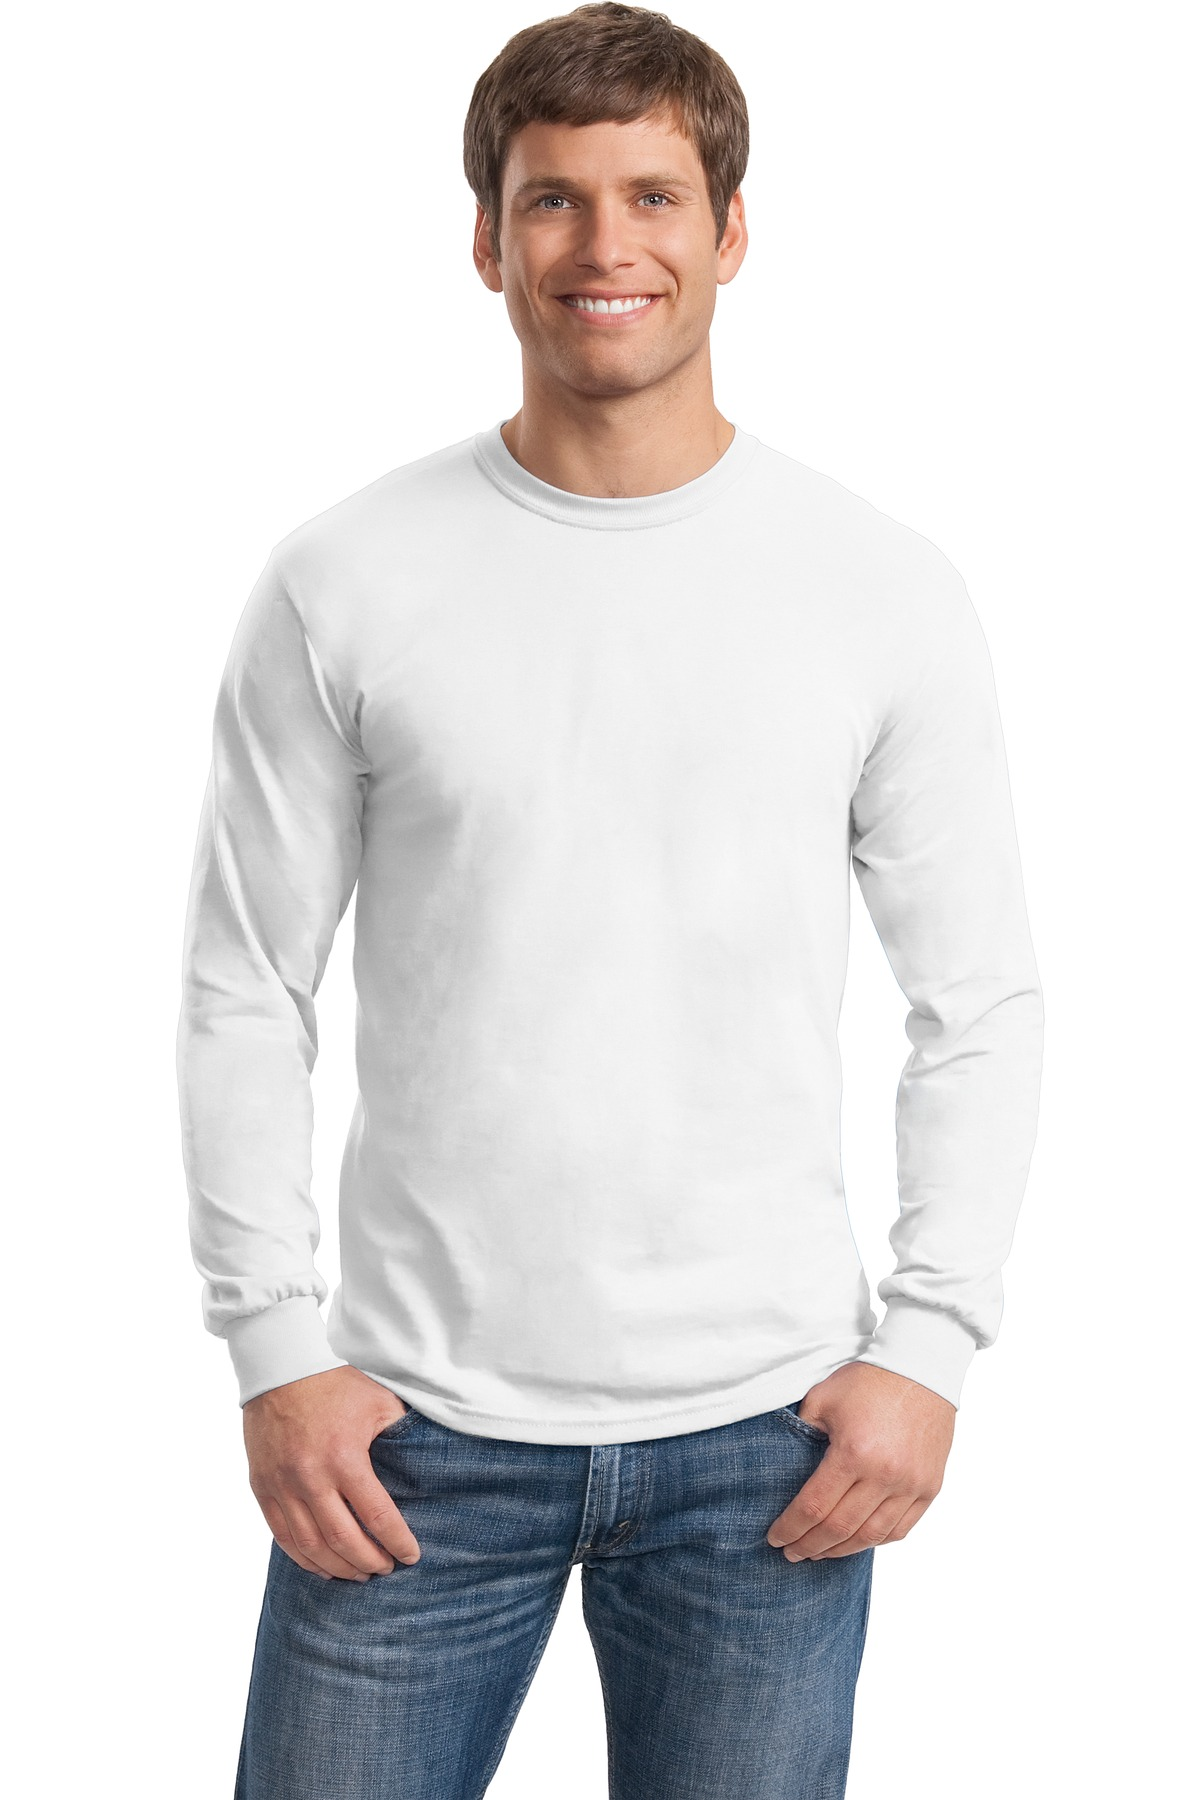 Gildan ®  - Heavy Cotton ™  100% Cotton Long Sleeve T-Shirt.  5400